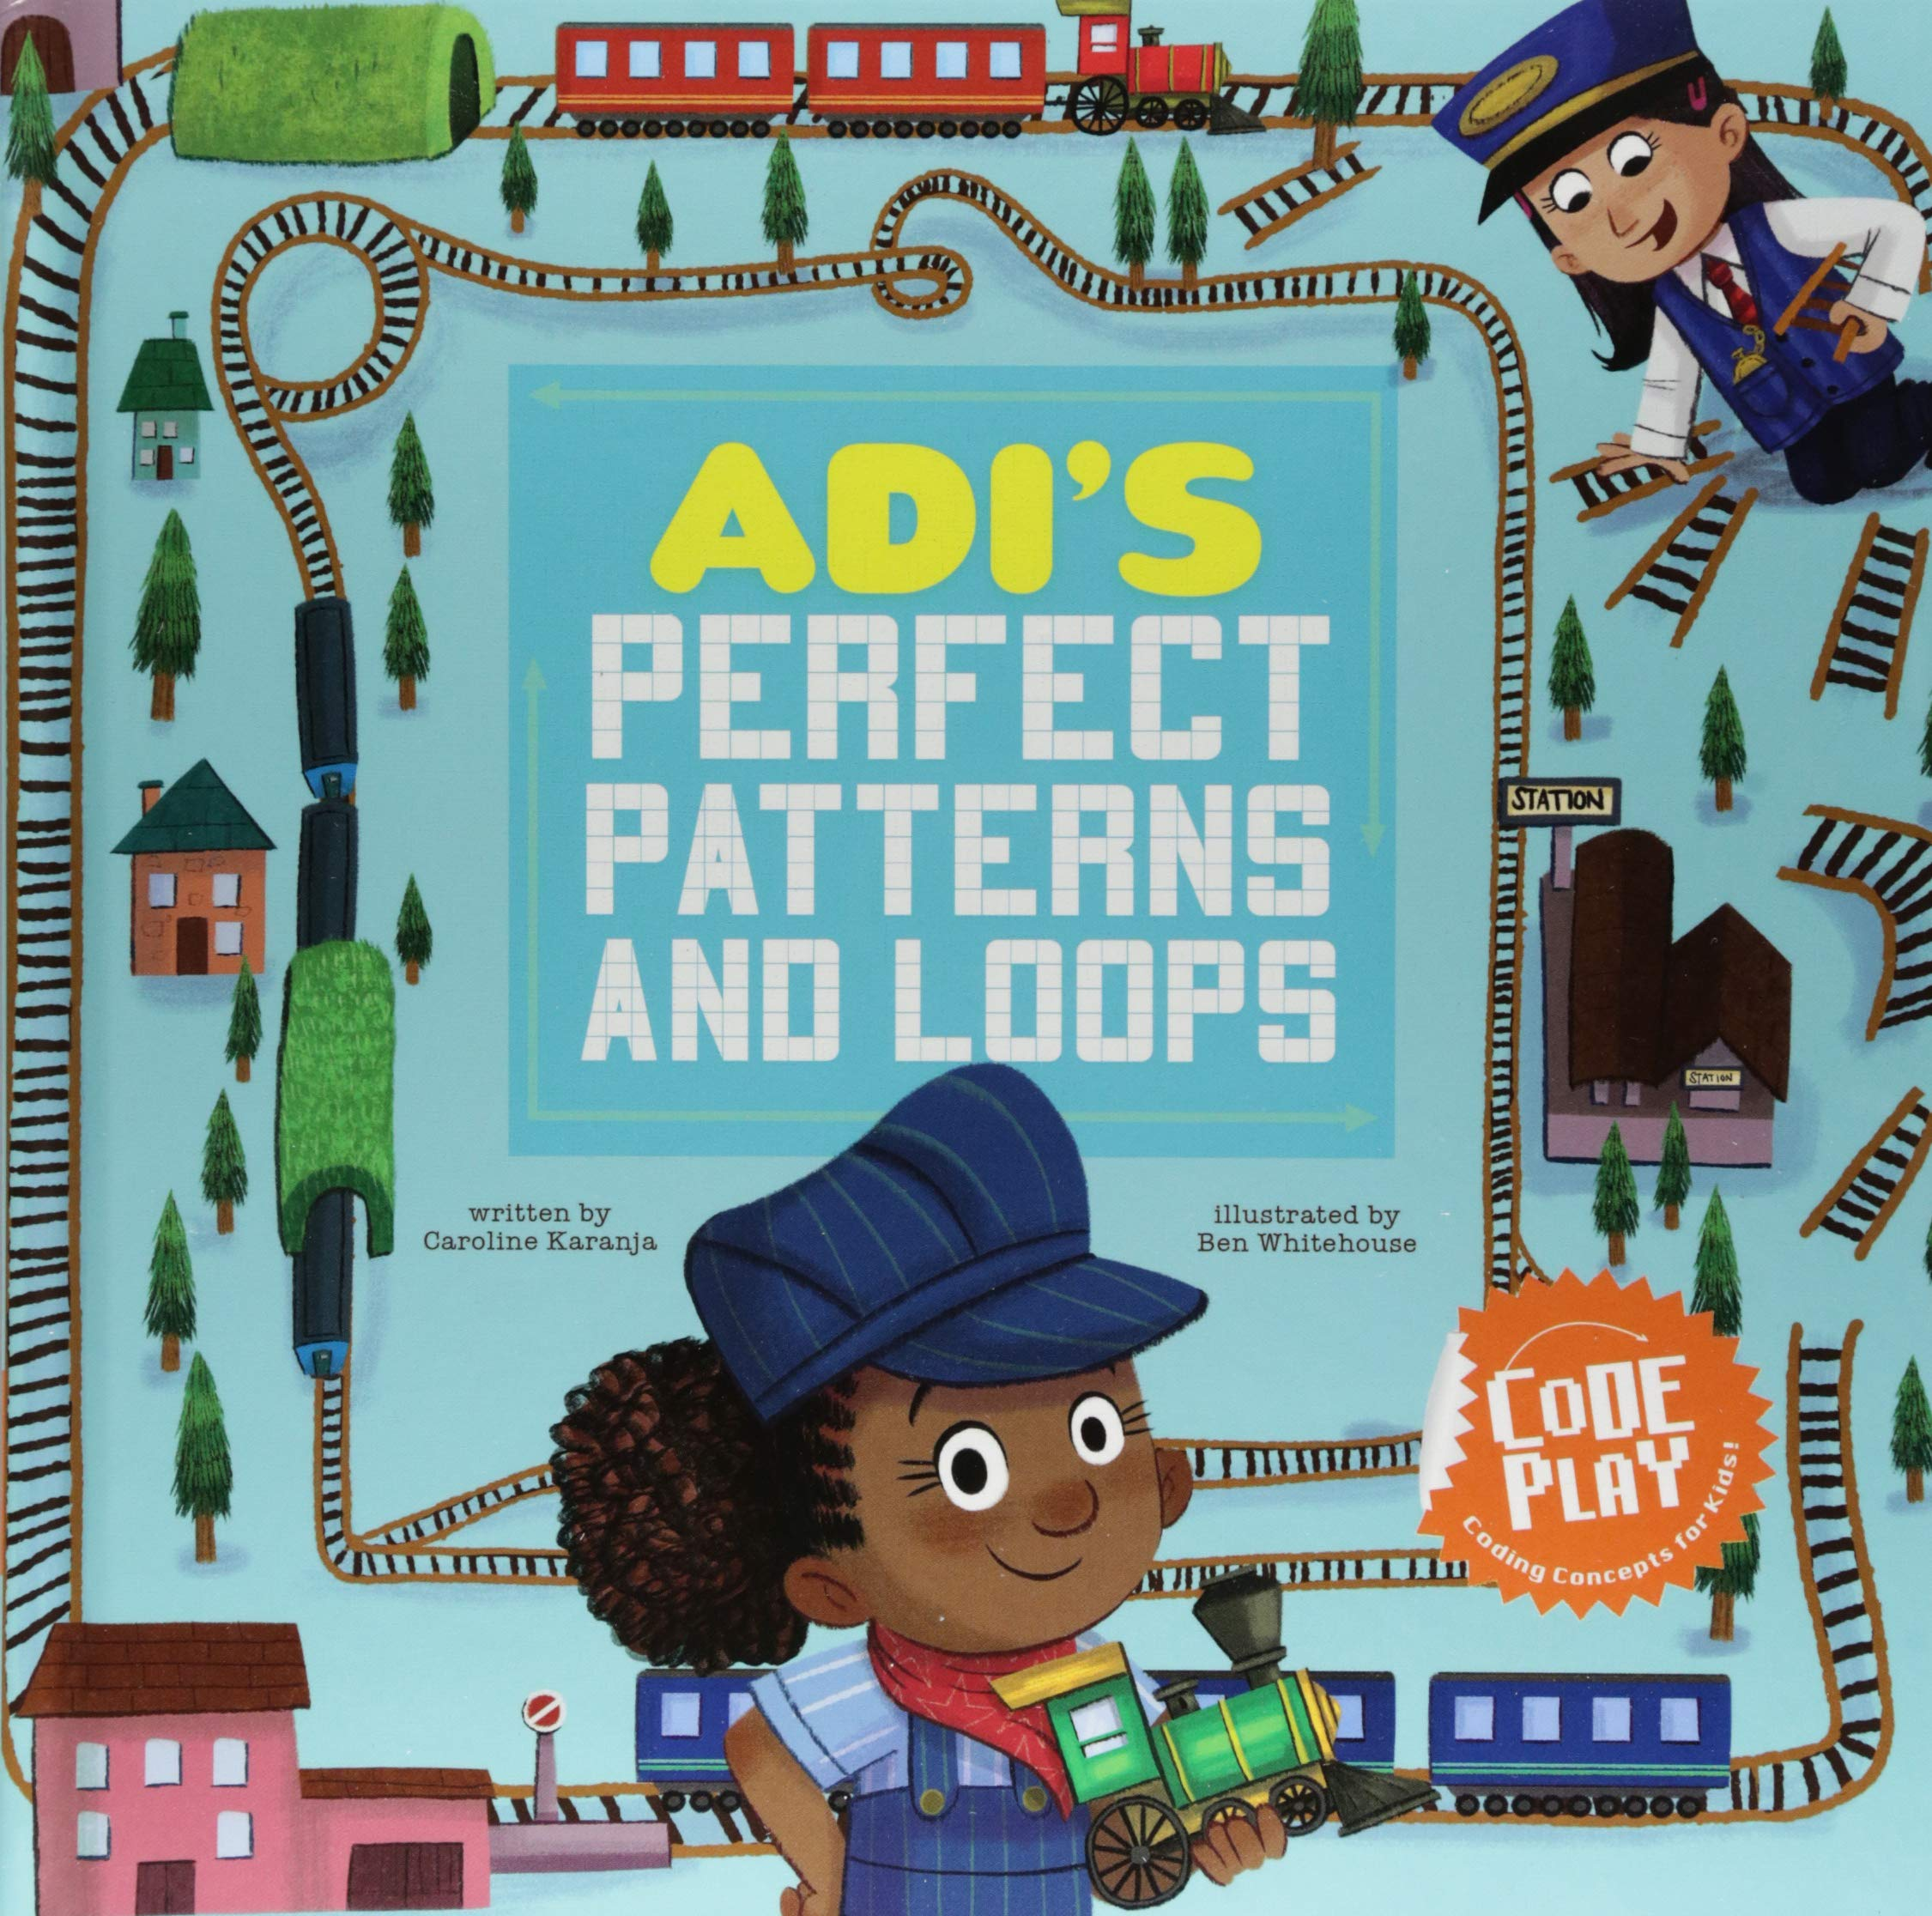 Adi's Perfect Patterns and Loops (Code Play)